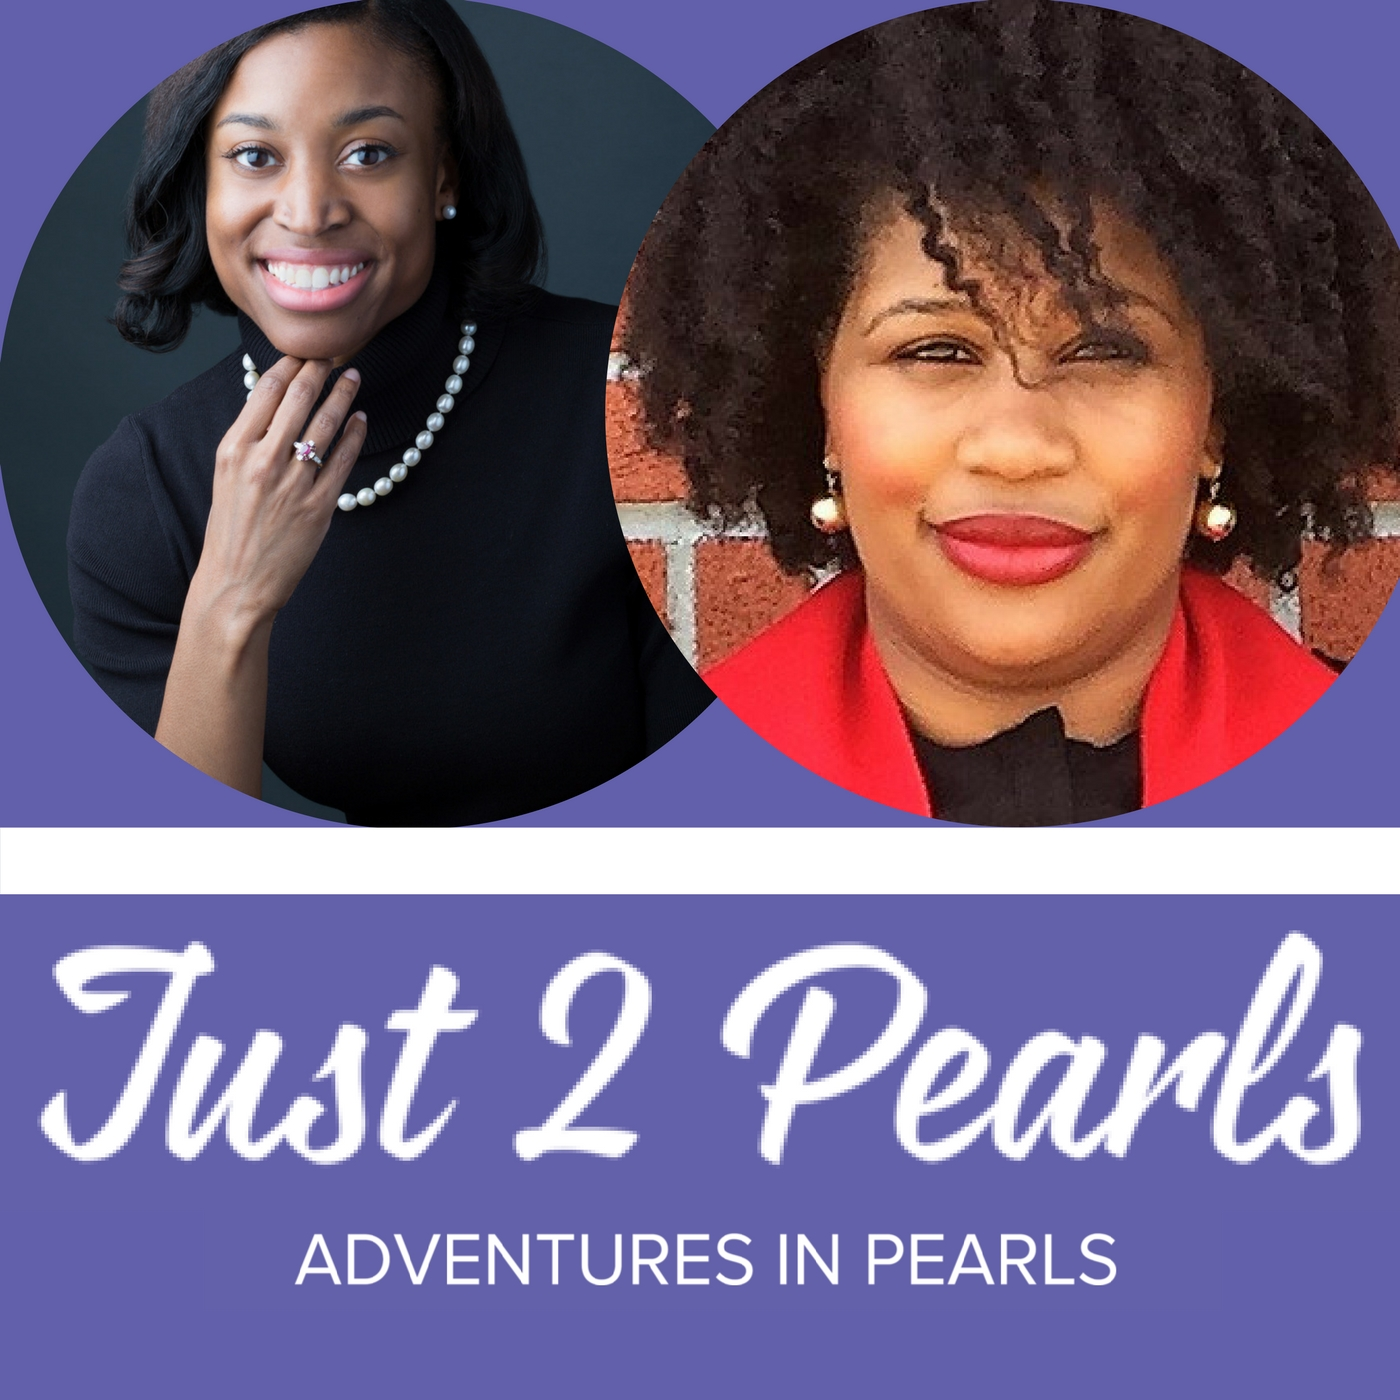 Contact Pearls